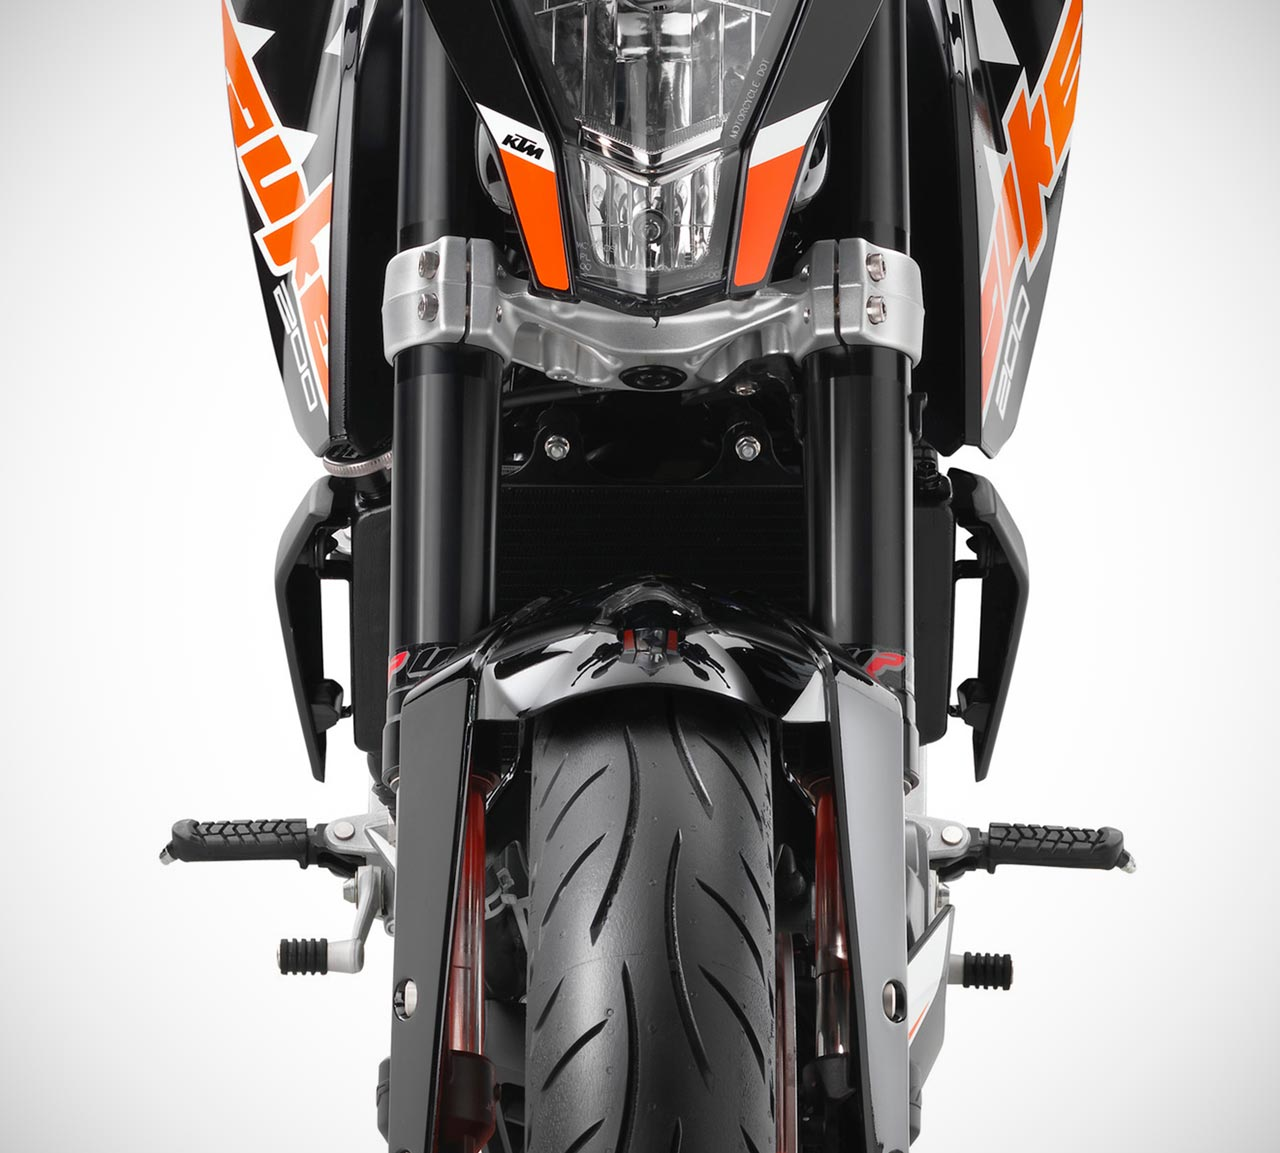 2017 ktm duke 200 launched in india at inr 1.43 lakhs - autobics